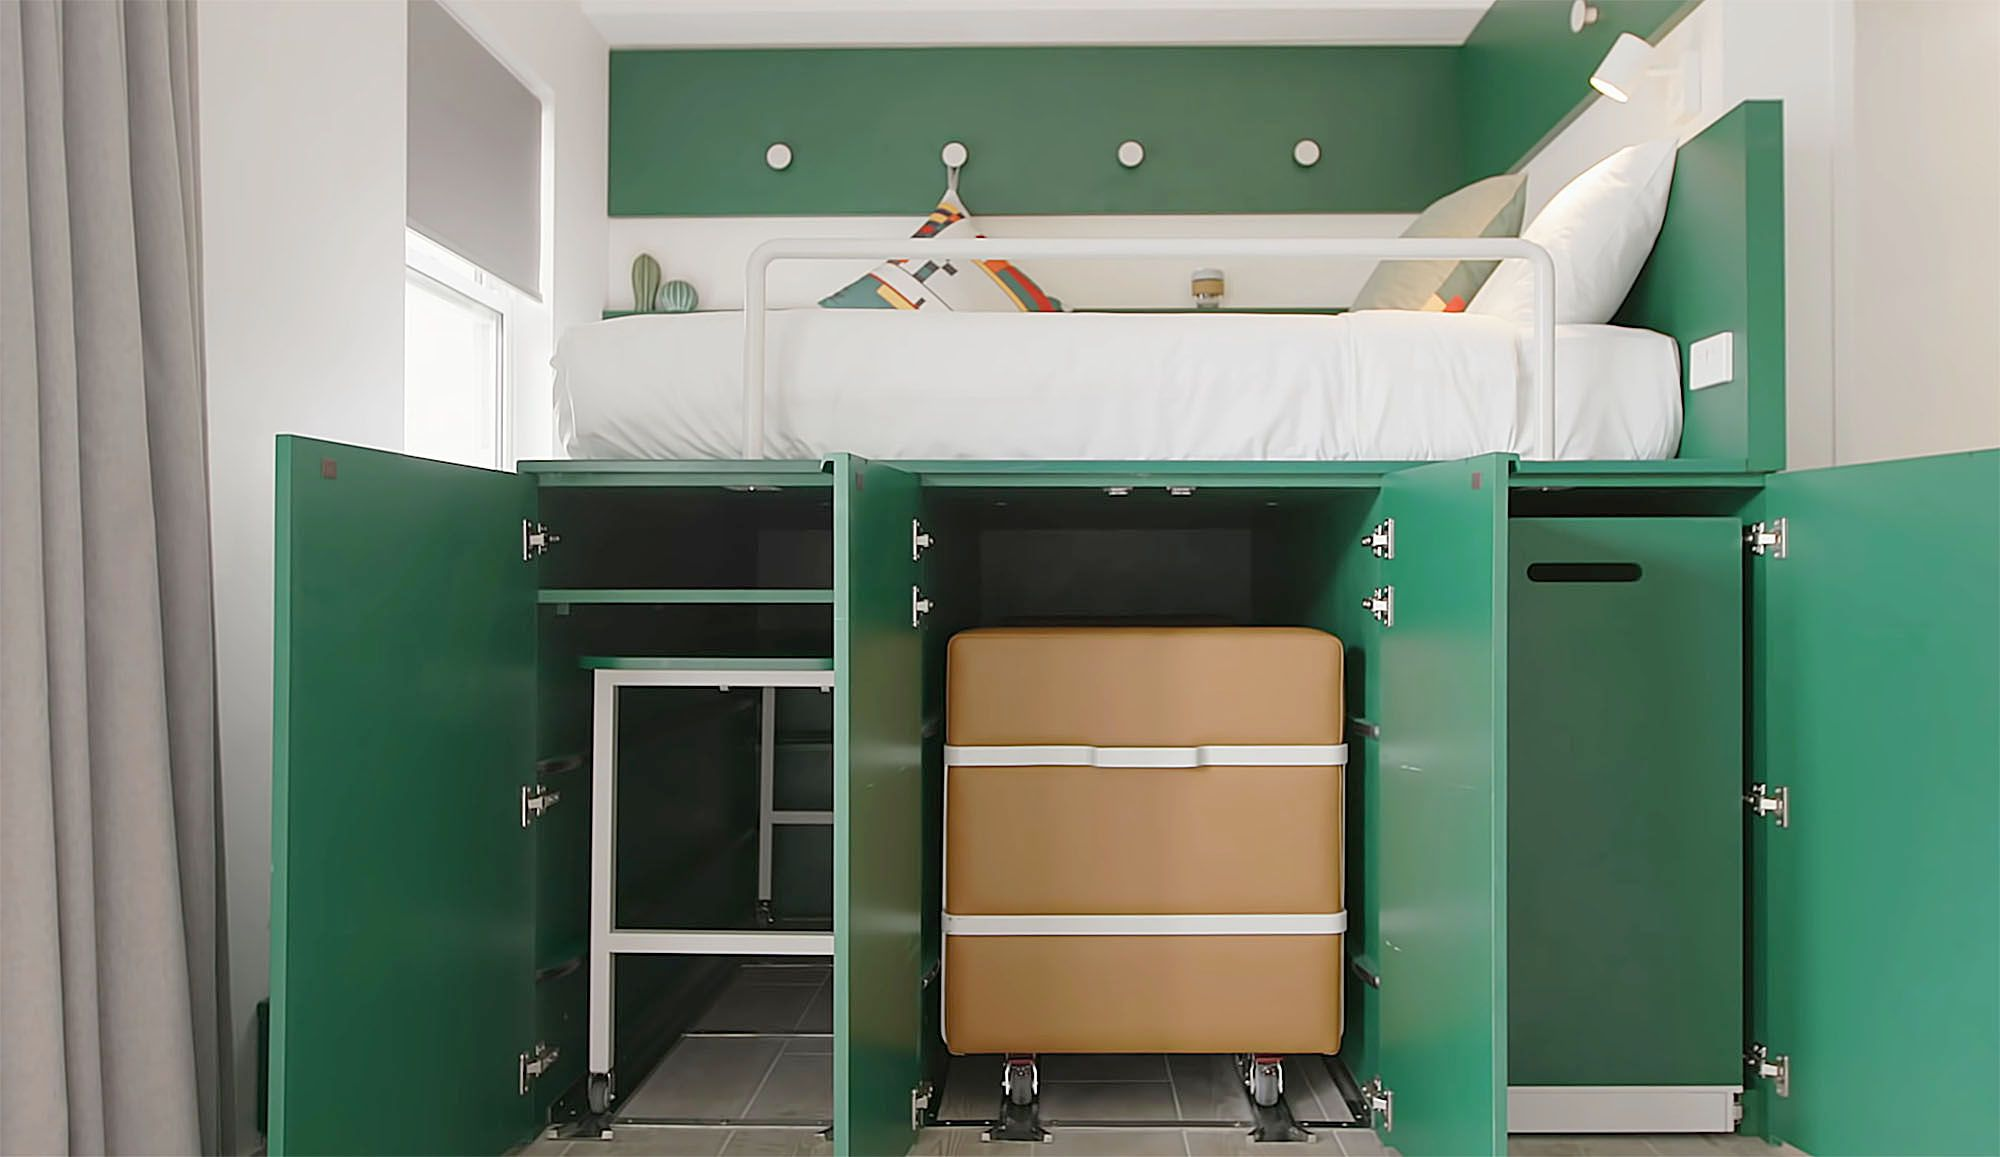 UKO stanmore coliving micro-apartment Mostaghim Associates bed cabinets open